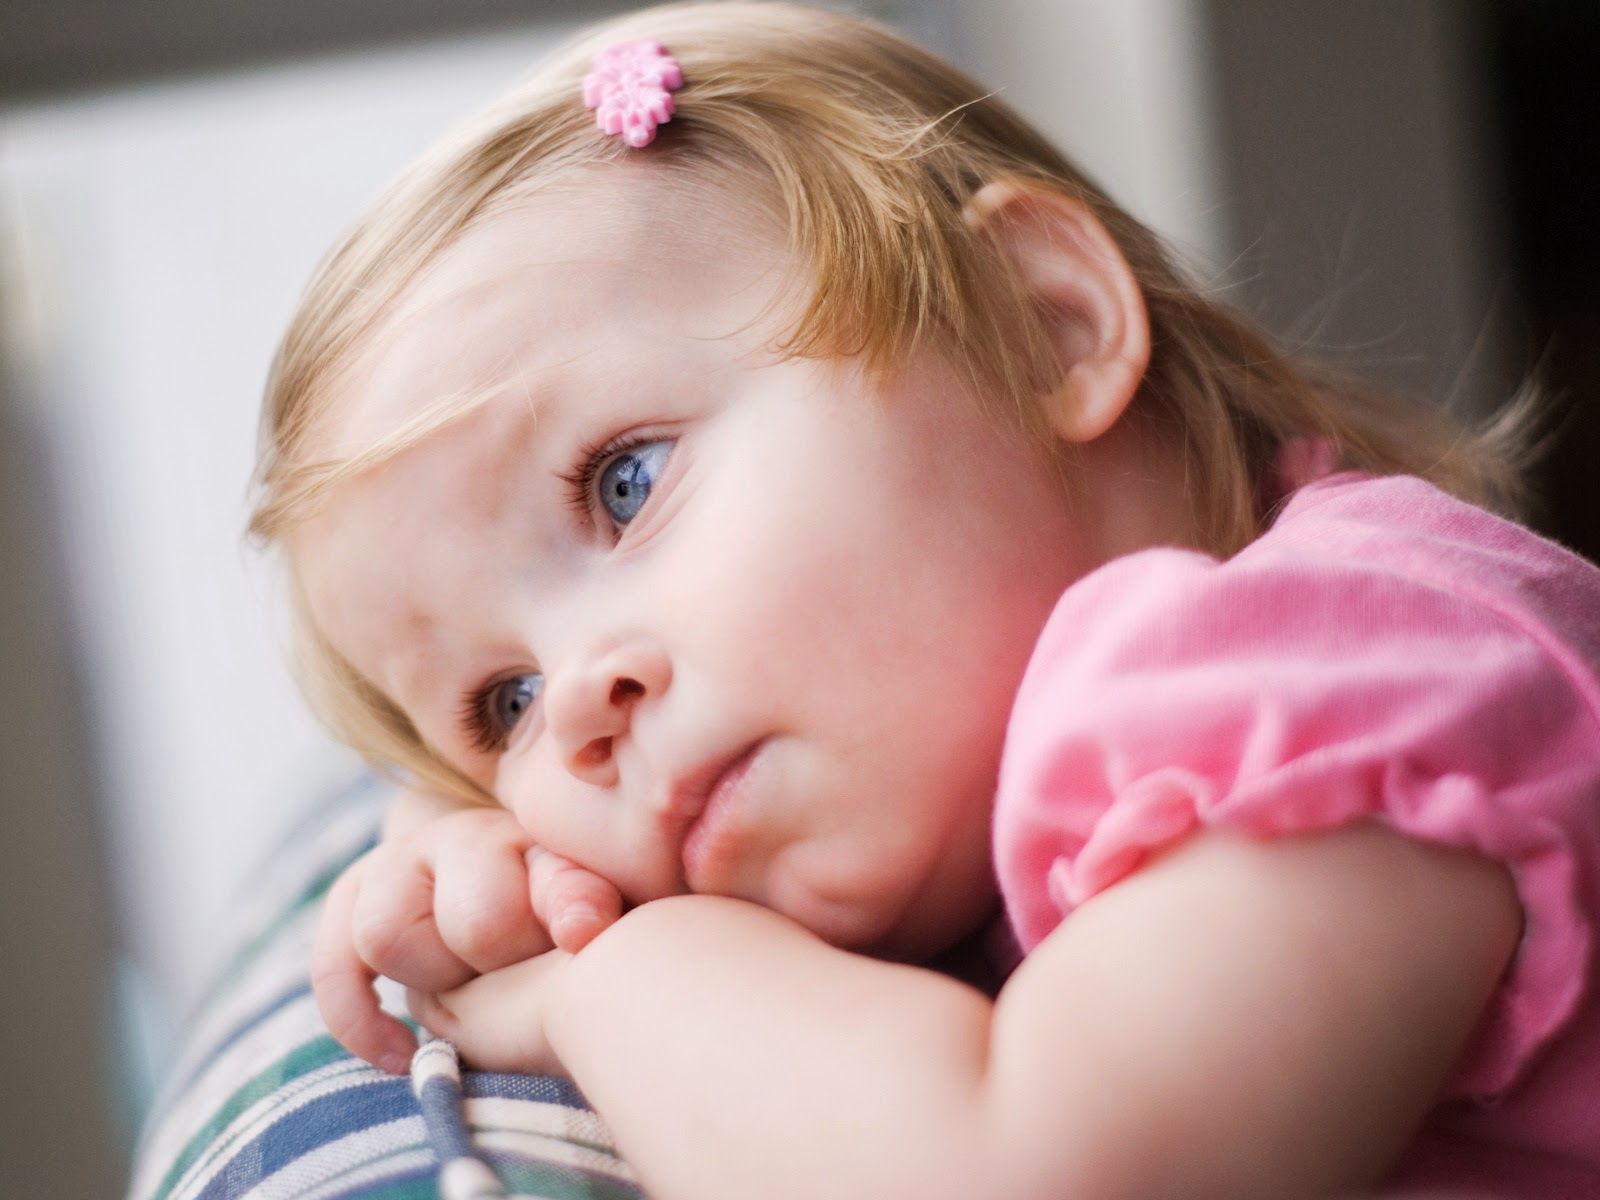 Cute Baby Wallpapers Free Download ~ Unique Wallpapers